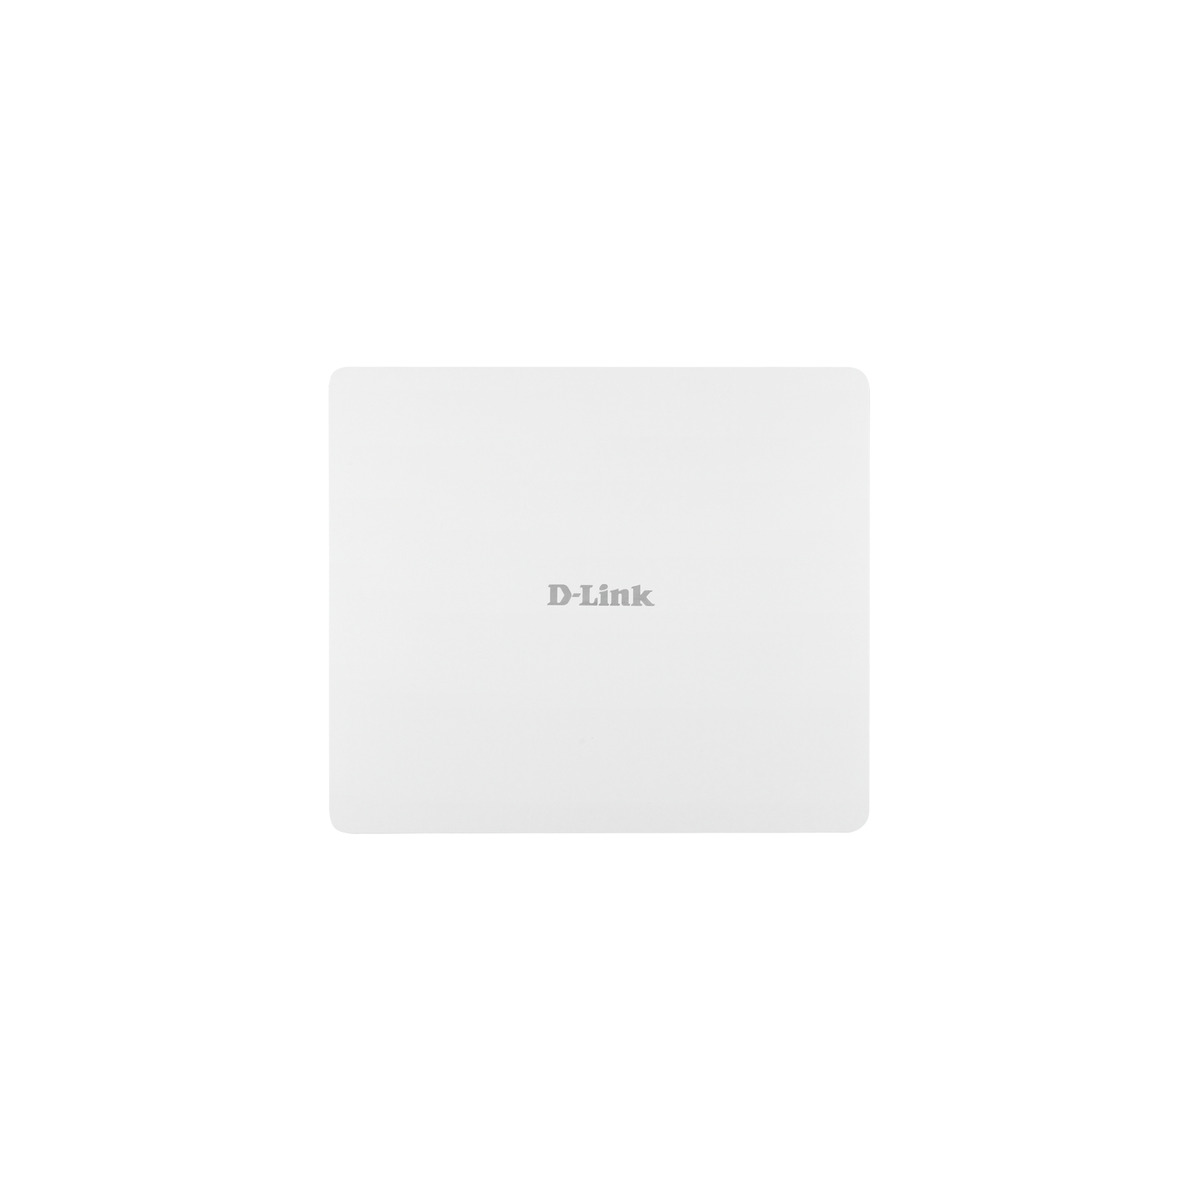 0790069443367-d-link-ac1200-supporto-power-over-ethernet-poe-bianco